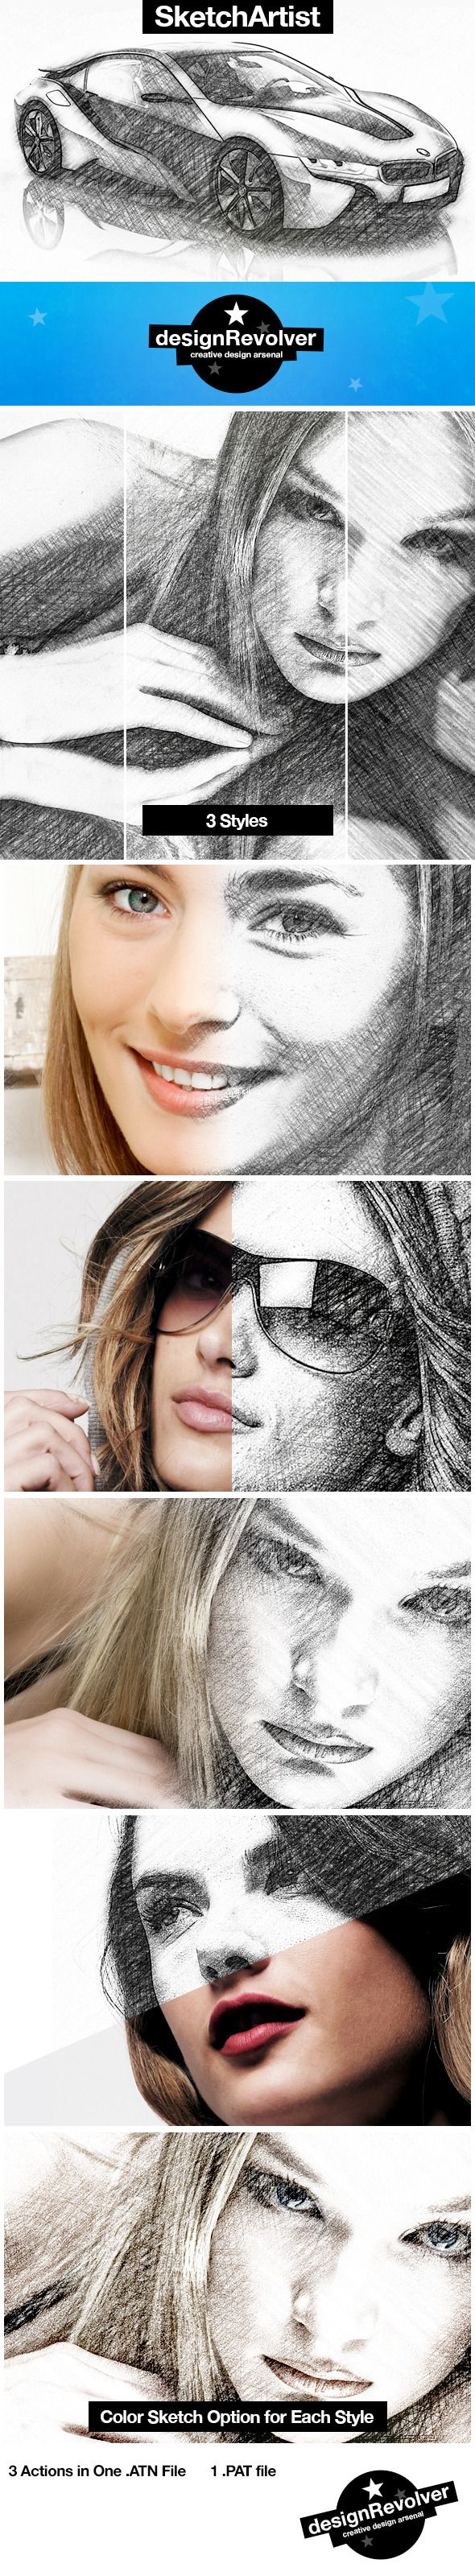 $4. Turn your photos into pencil sketches with SketchArtist actions. The pack contains 3 actions, each giving you a different sketch style. You can also have a